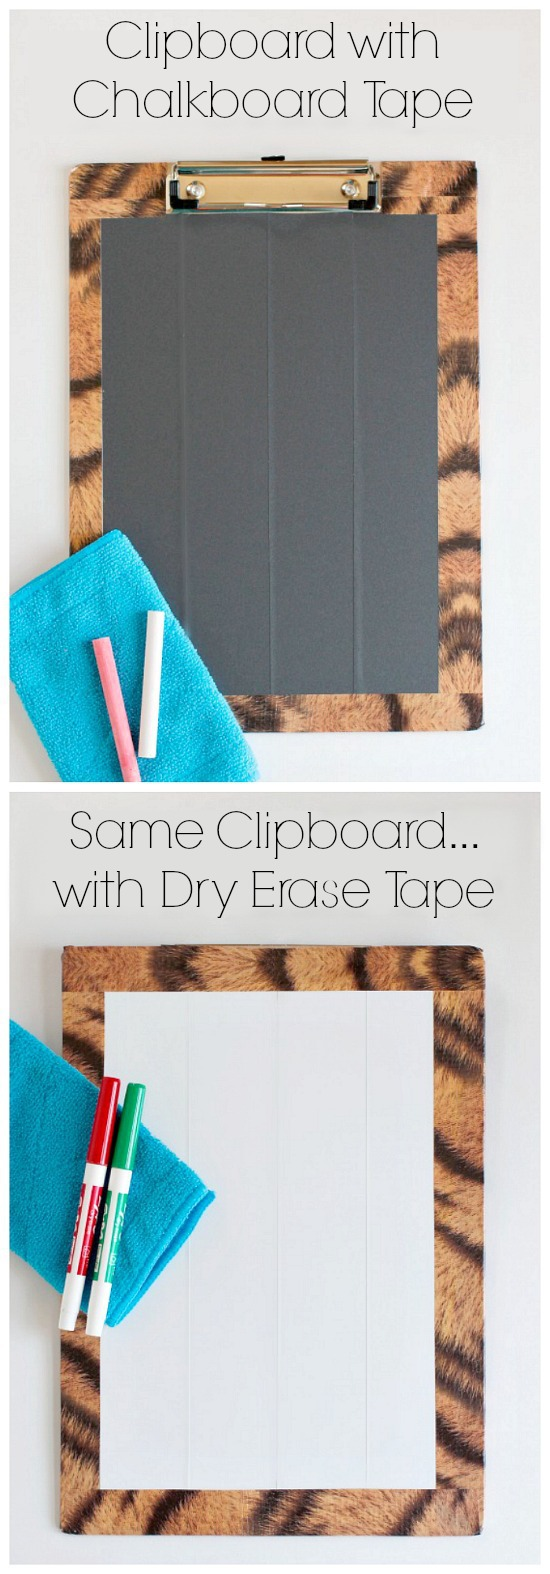 DIY Double-Sided Clipboard with Chalkboard and Dry Erase Tape